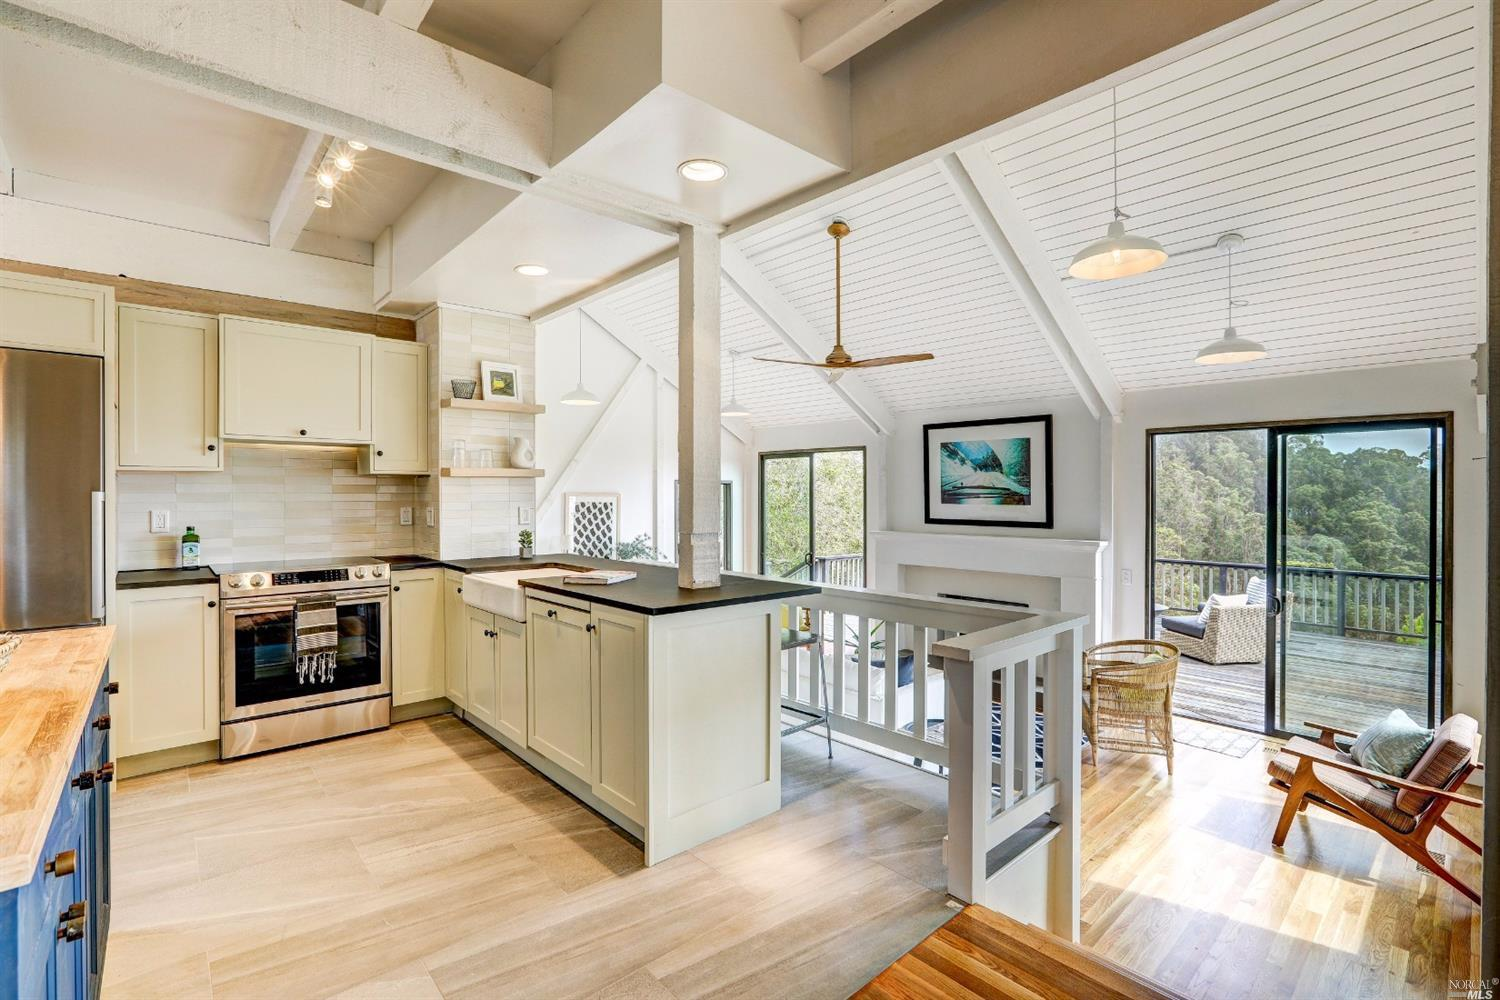 SOLD - 1003 Trillium Lane, Mill Valley, CA3 bed/ 2 bath, 1639 sf$1, 400,000Represented SellersMultiple offers, quick close